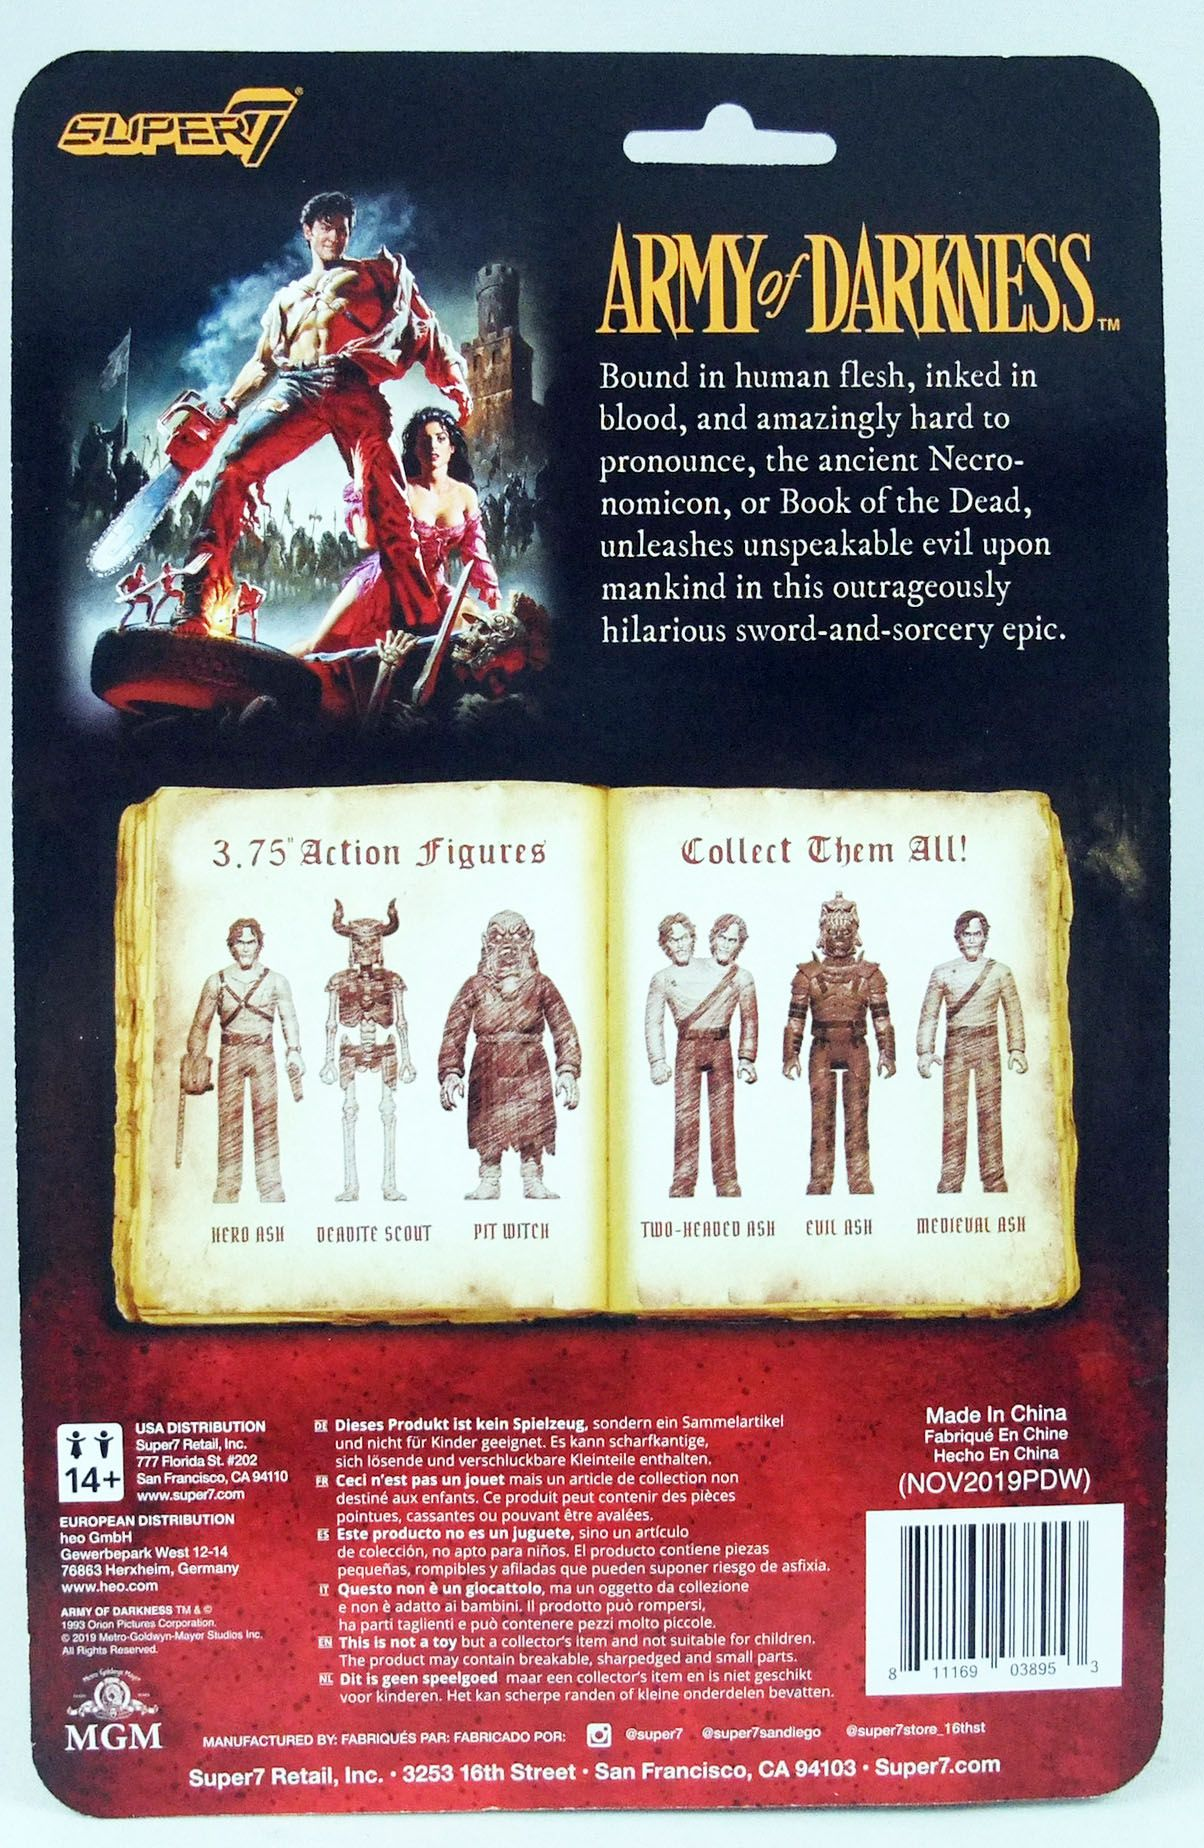 Army of Darkness - Super7 - Deadite Scout - ReAction figure